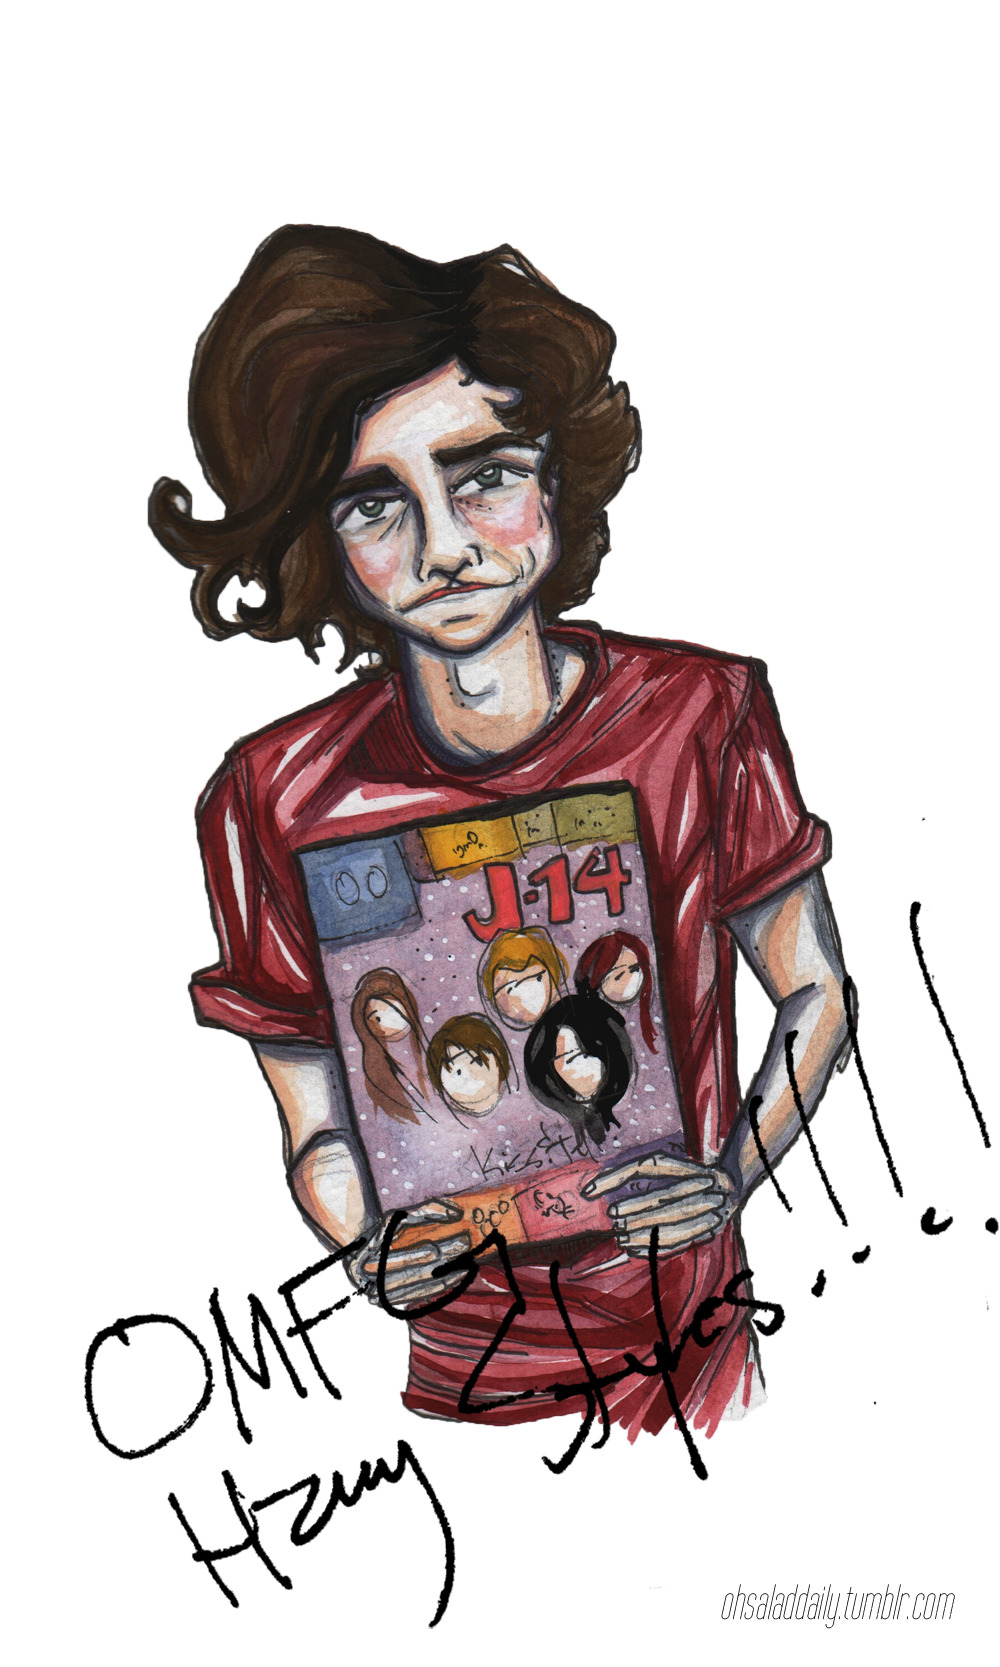 i make zero promises that this is my last time drawing one direction or a member thereof